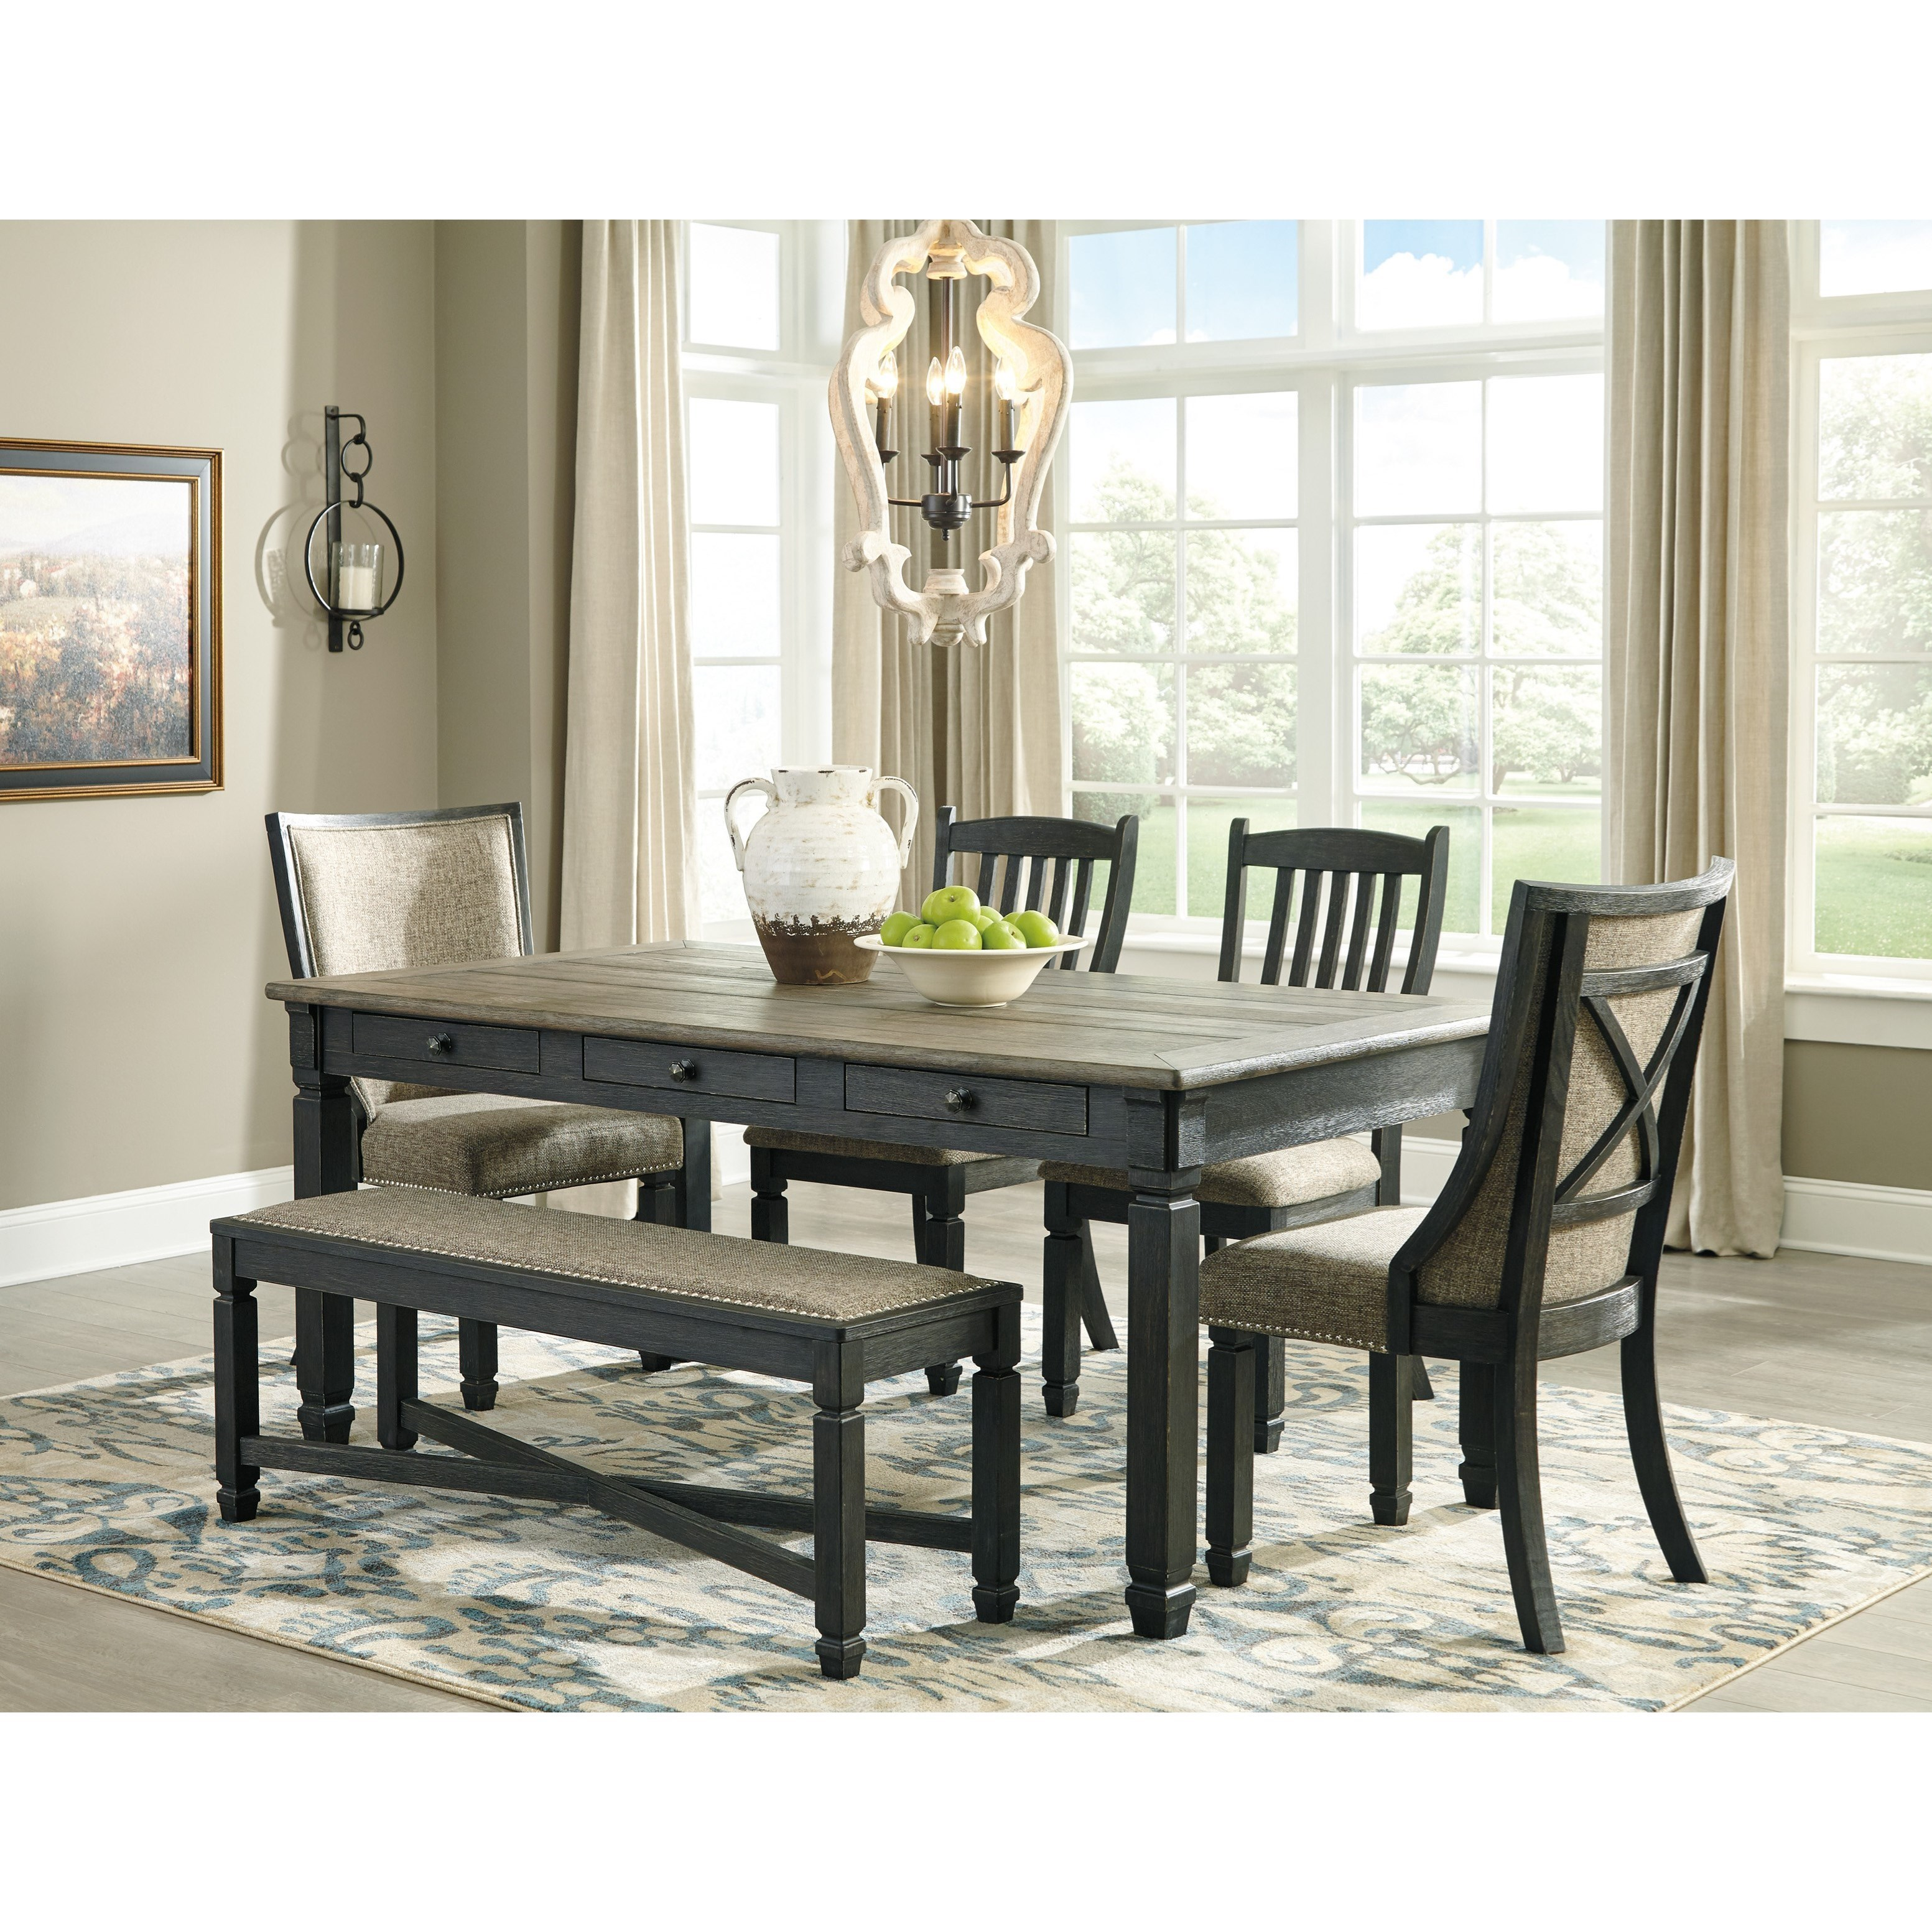 Signature Design By Ashley Tyler Creek6 Piece Table And Chair Set ...